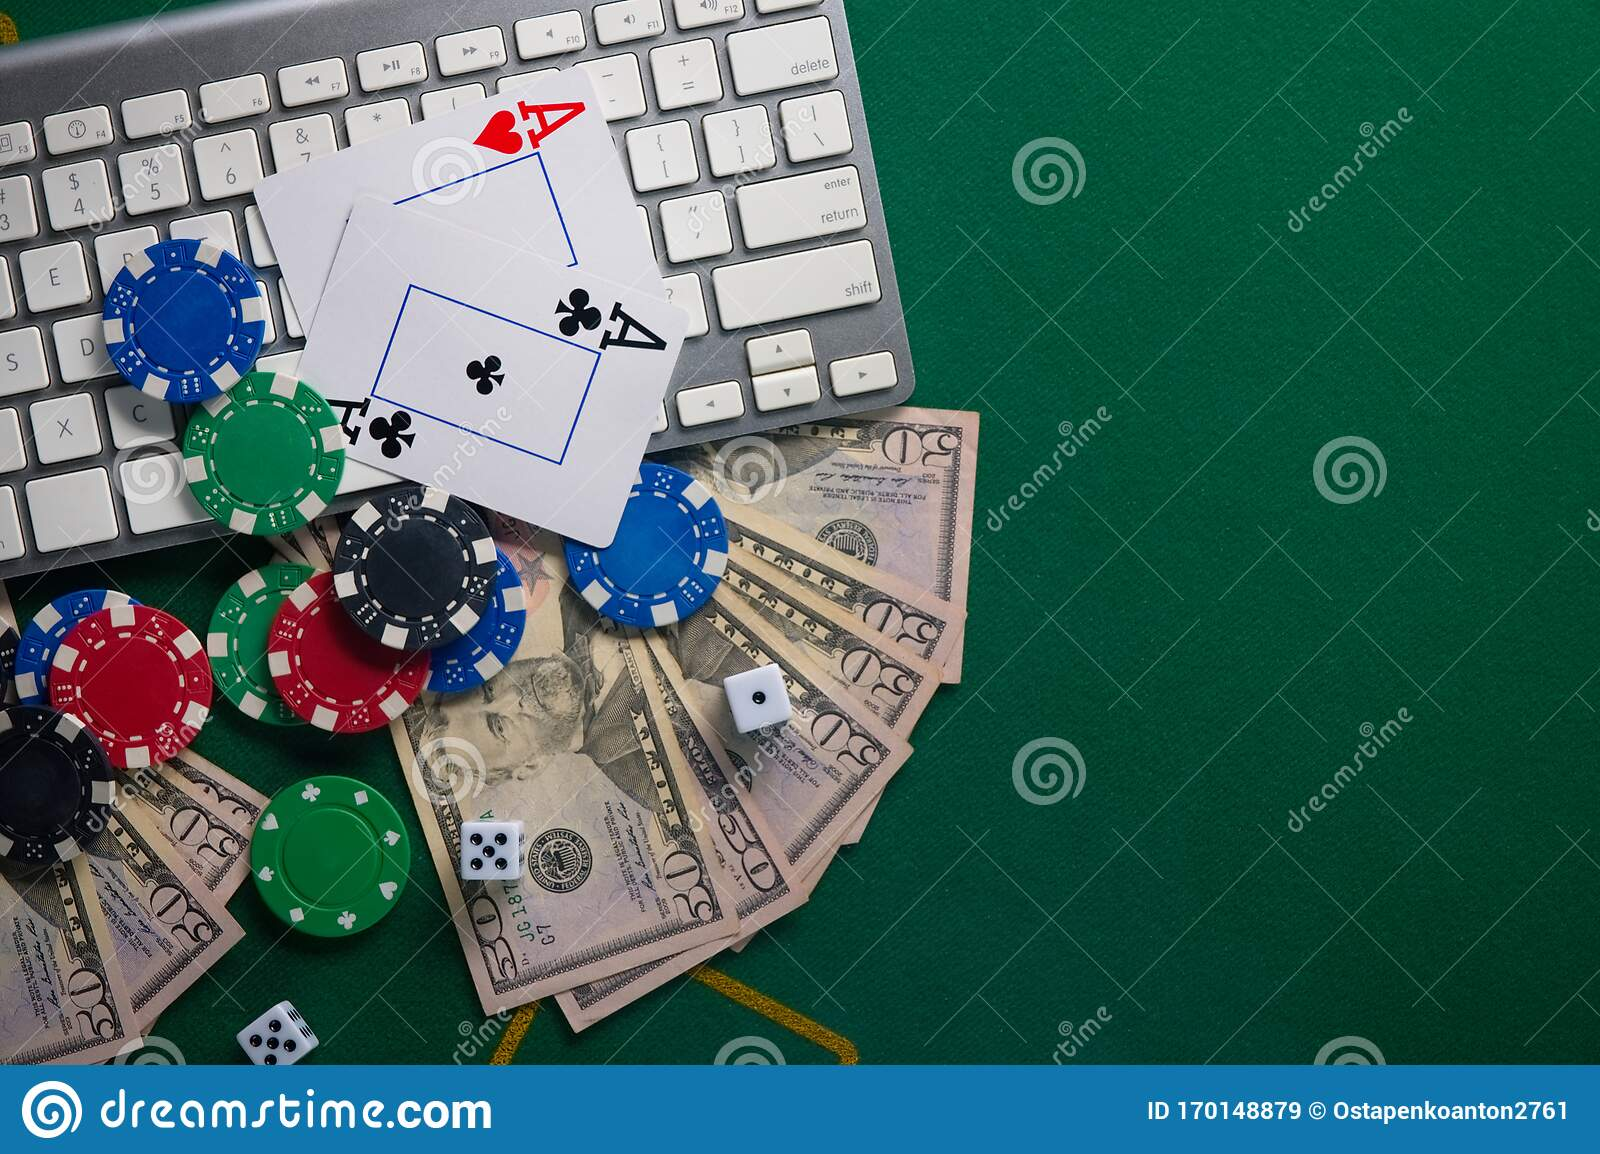 Poker download pc Lucky 496275